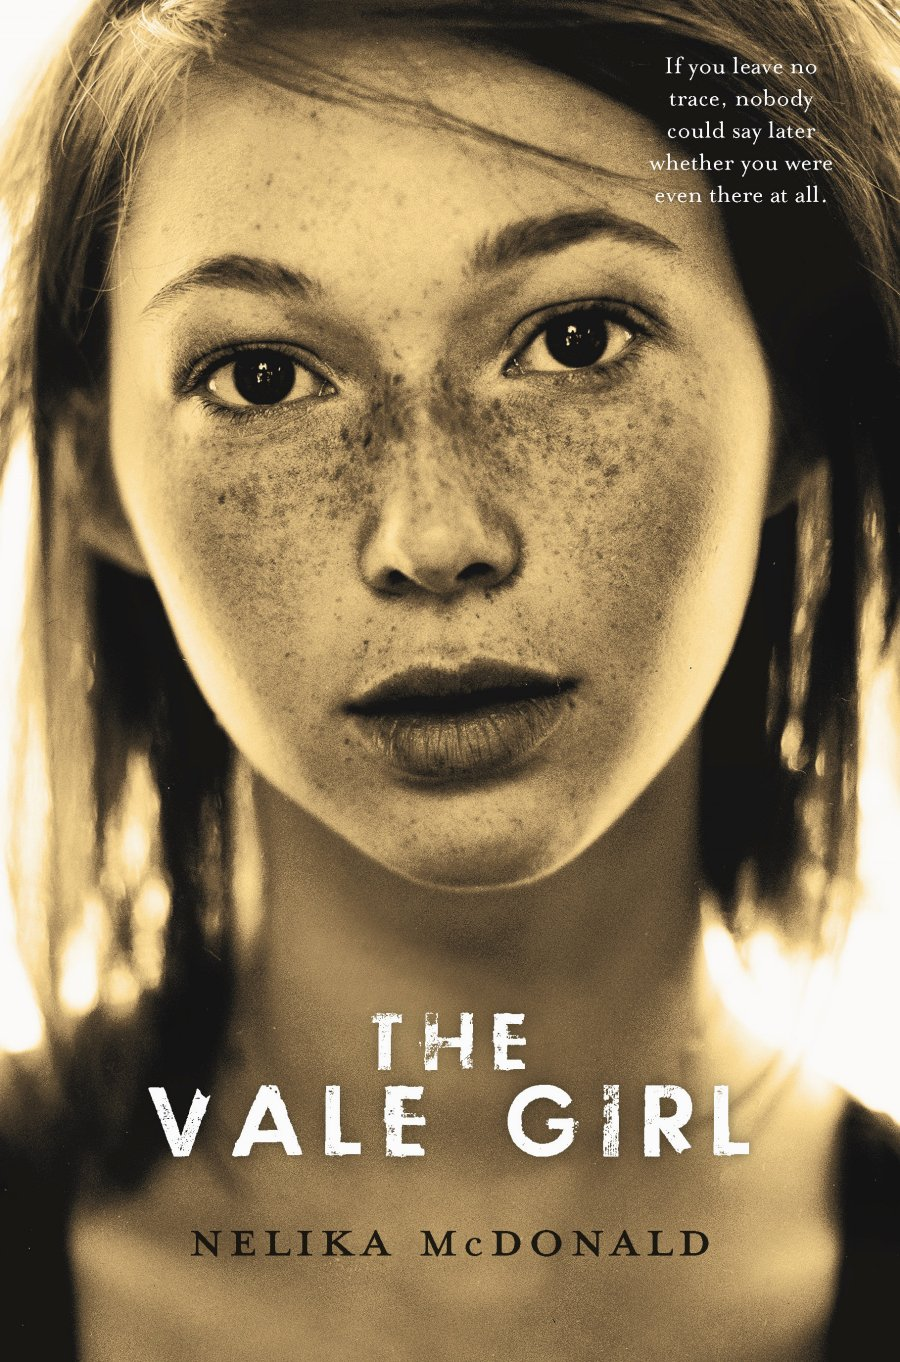 The Vale Girl - Pan Macmillan, 2013Fifteen-year-old Sarah Vale has gone missing in the small town of Banville. She's the daughter of the town prostitute so no one seems particularly concerned.No one cares except Tommy Johns, who loves Sarah Vale with all the unadulterated, tentative passion of a teenage boy. He galvanises the town's policeman Sergeant Henson and, together, they turn the town inside out, searching for the lost girl.A delicate and layered exploration of secrets and lies, forgotten children and absent parents, and the long shadows of the past.An extraordinary debut from a talented new writer.Interview: ABC Radio National, July 25, 2013